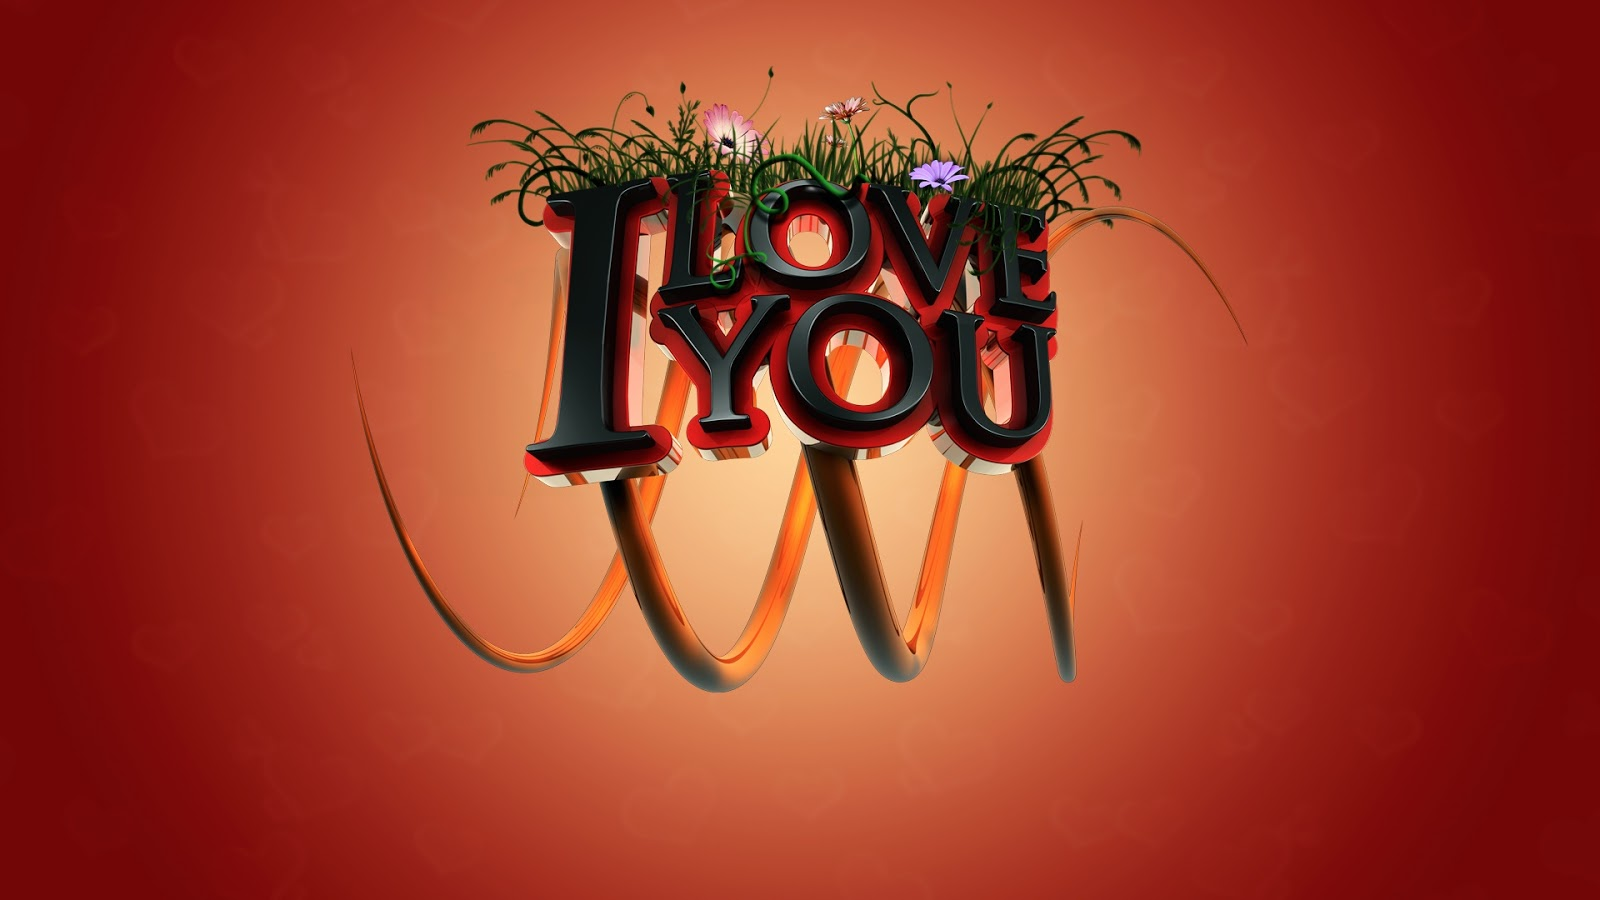 I Love you 3D 1920X1080 Wallpaper